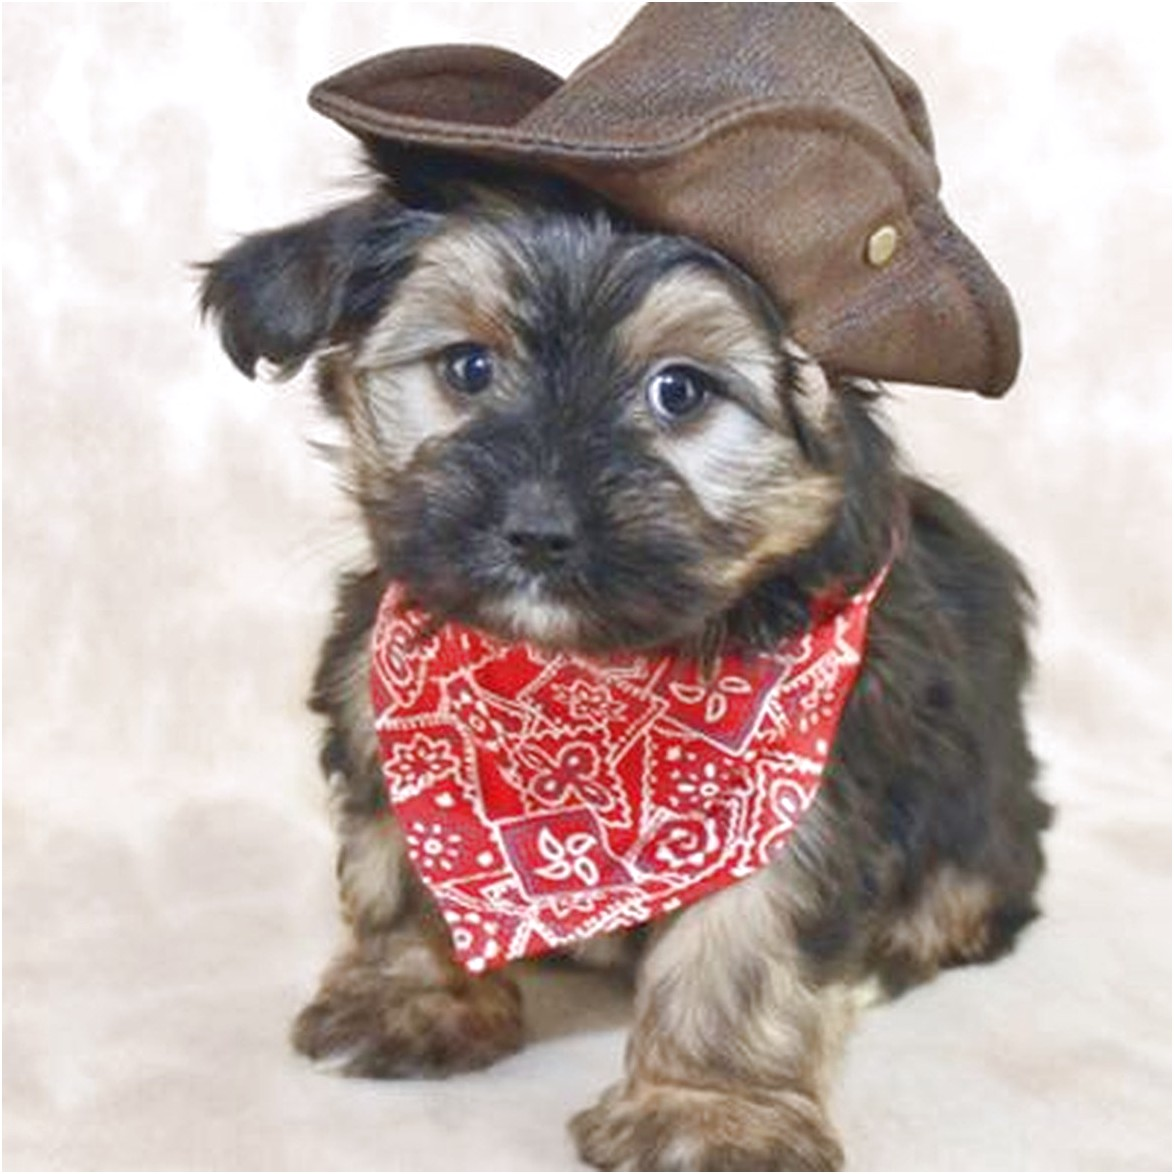 teacup yorkie puppies for sale or adoption